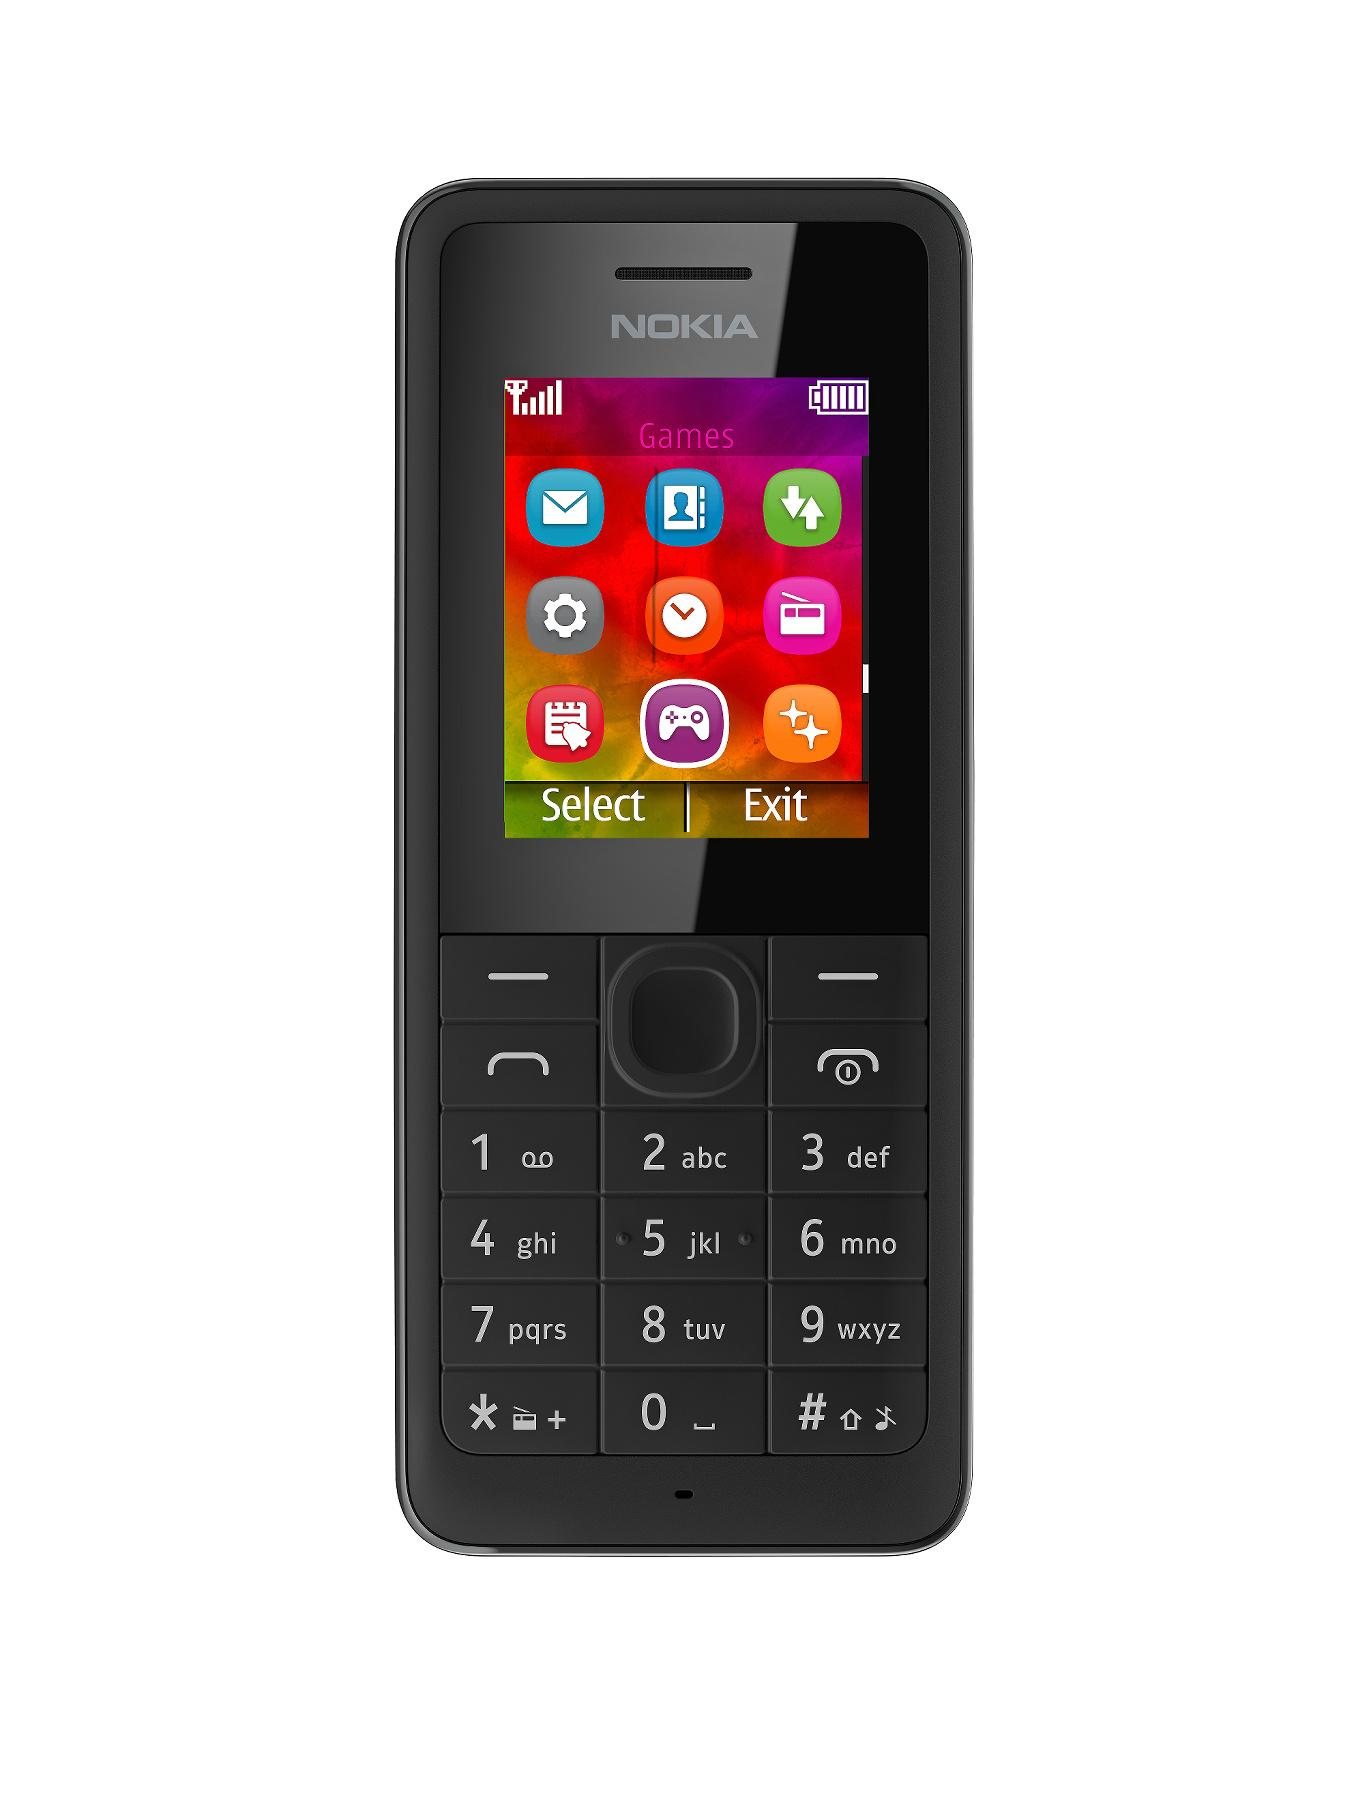 Nokia 106 Mobile Phone - Black - Black, Black